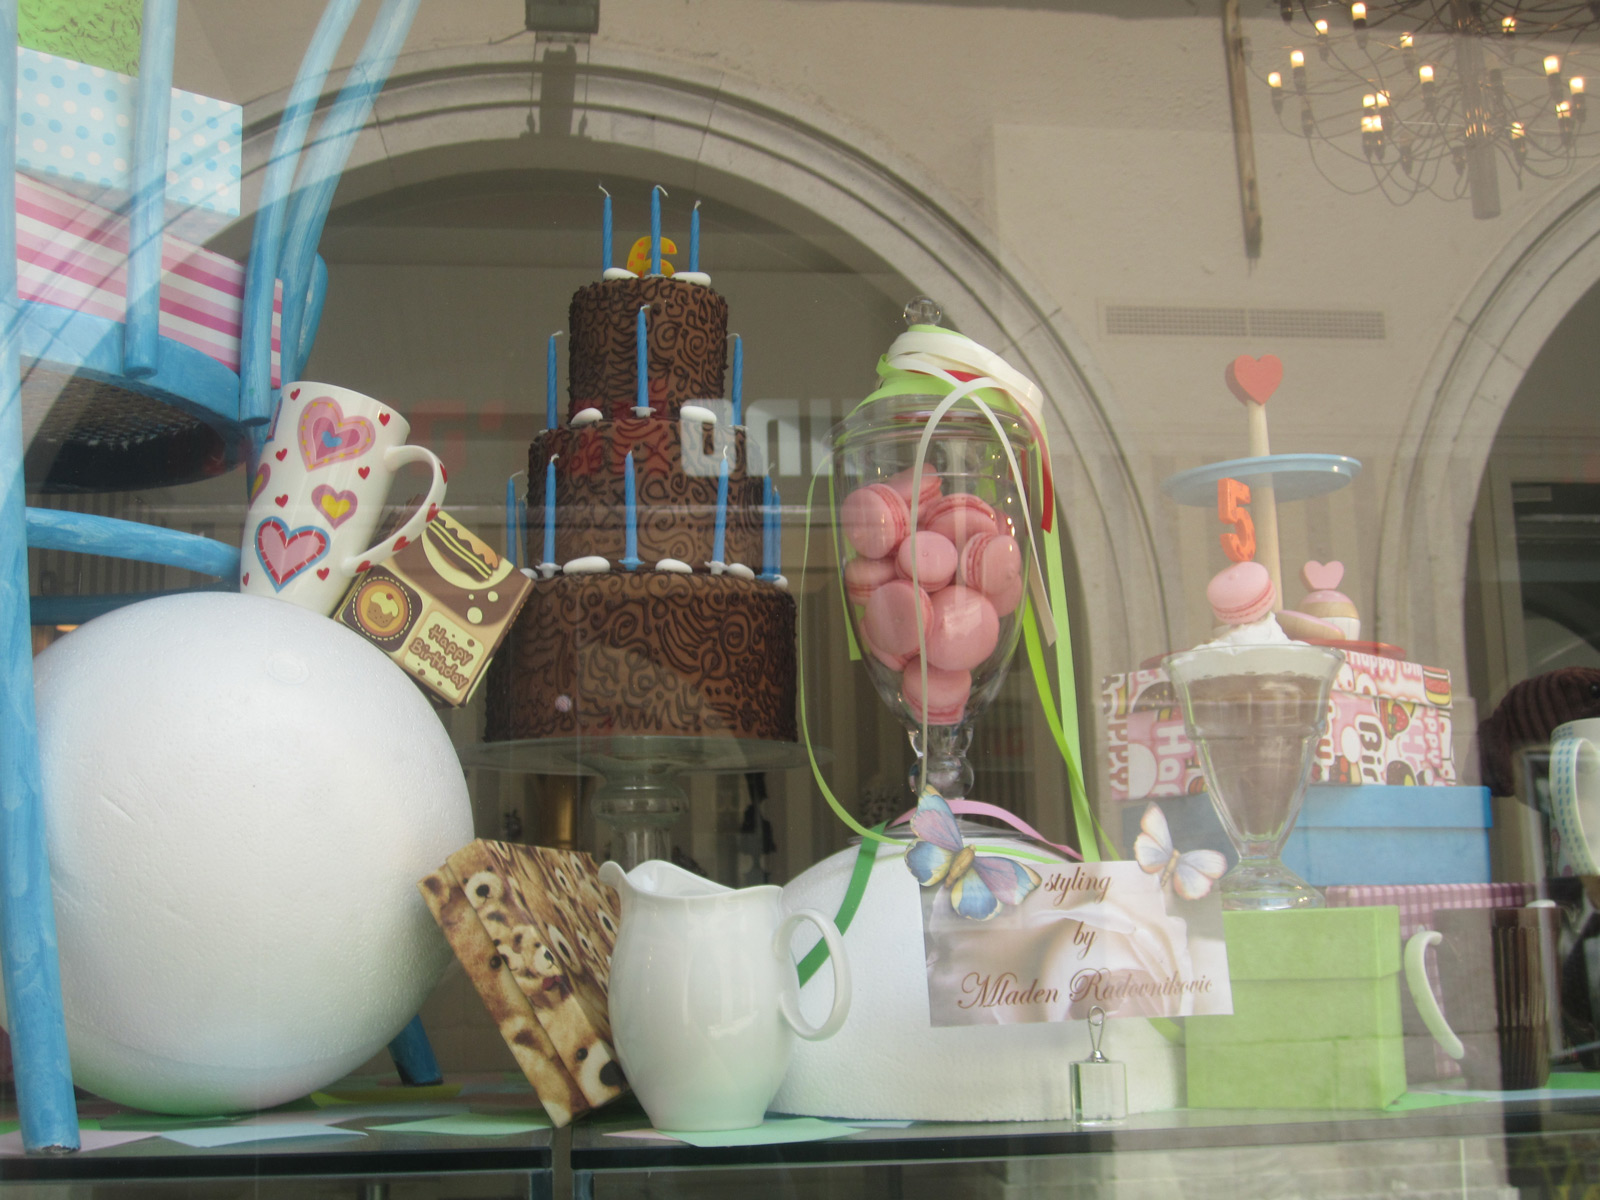 This could be a soft Easter window display, with this enchanting and feminine style, and a glass jar full of macarons.